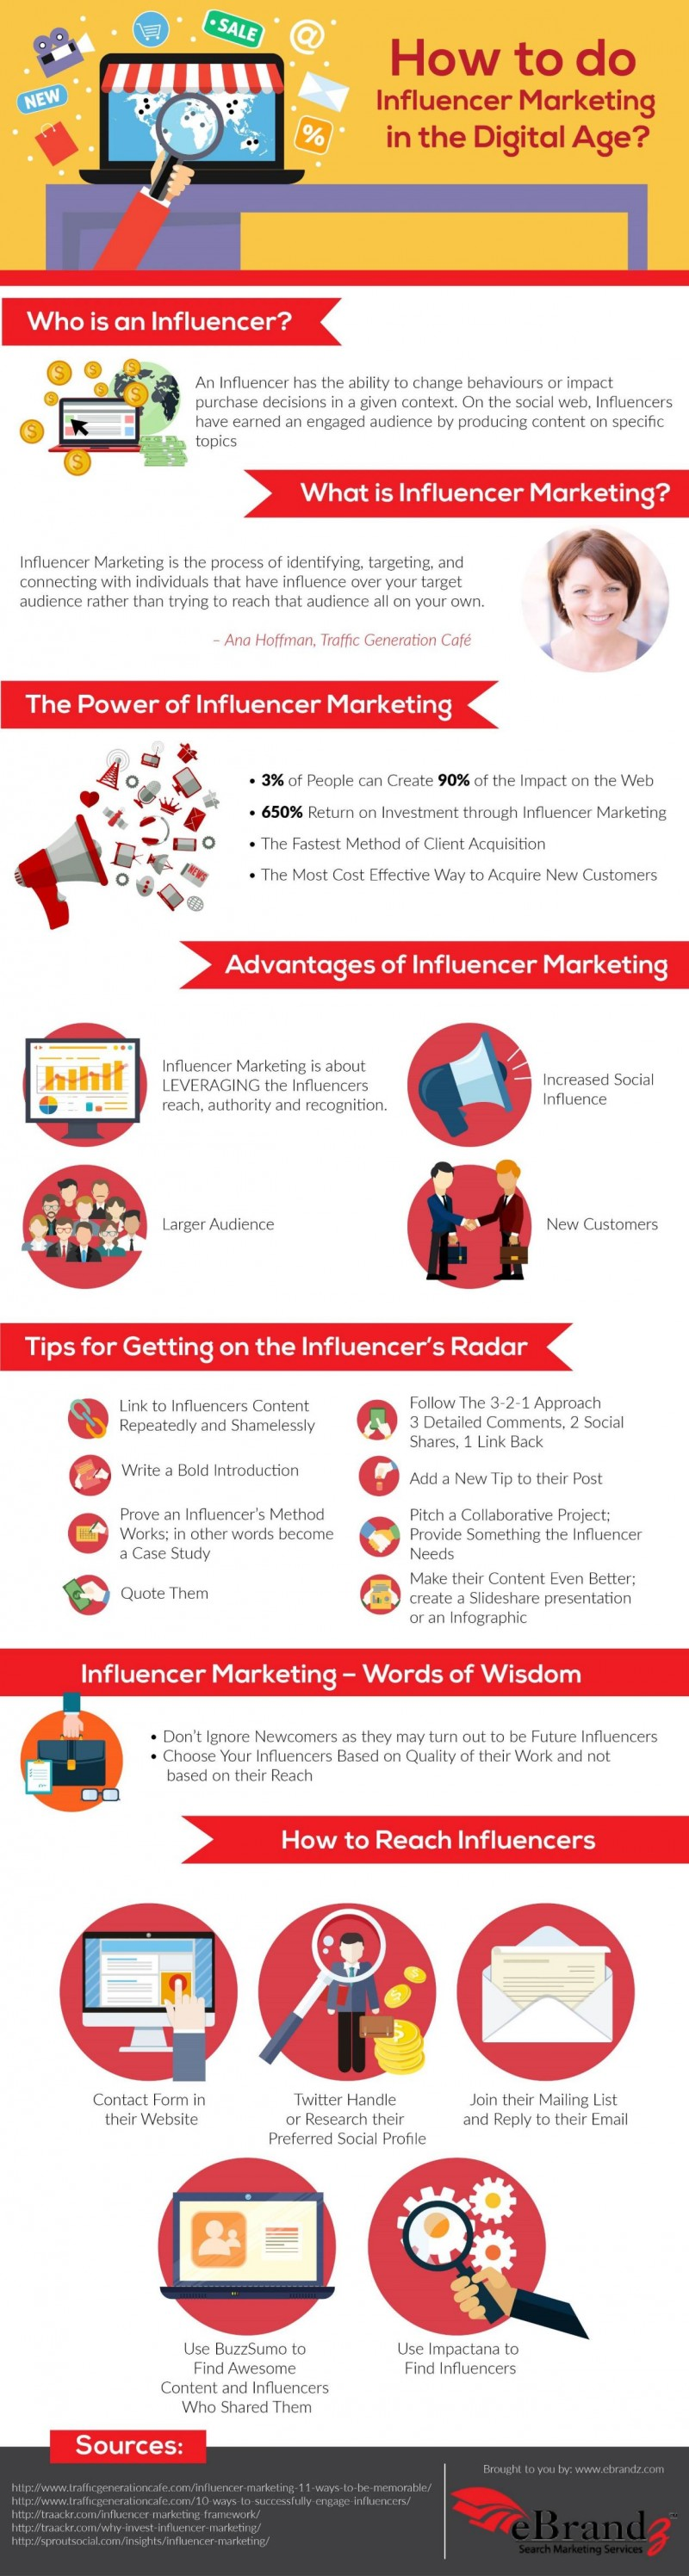 Infographie 276 - Influence marketing